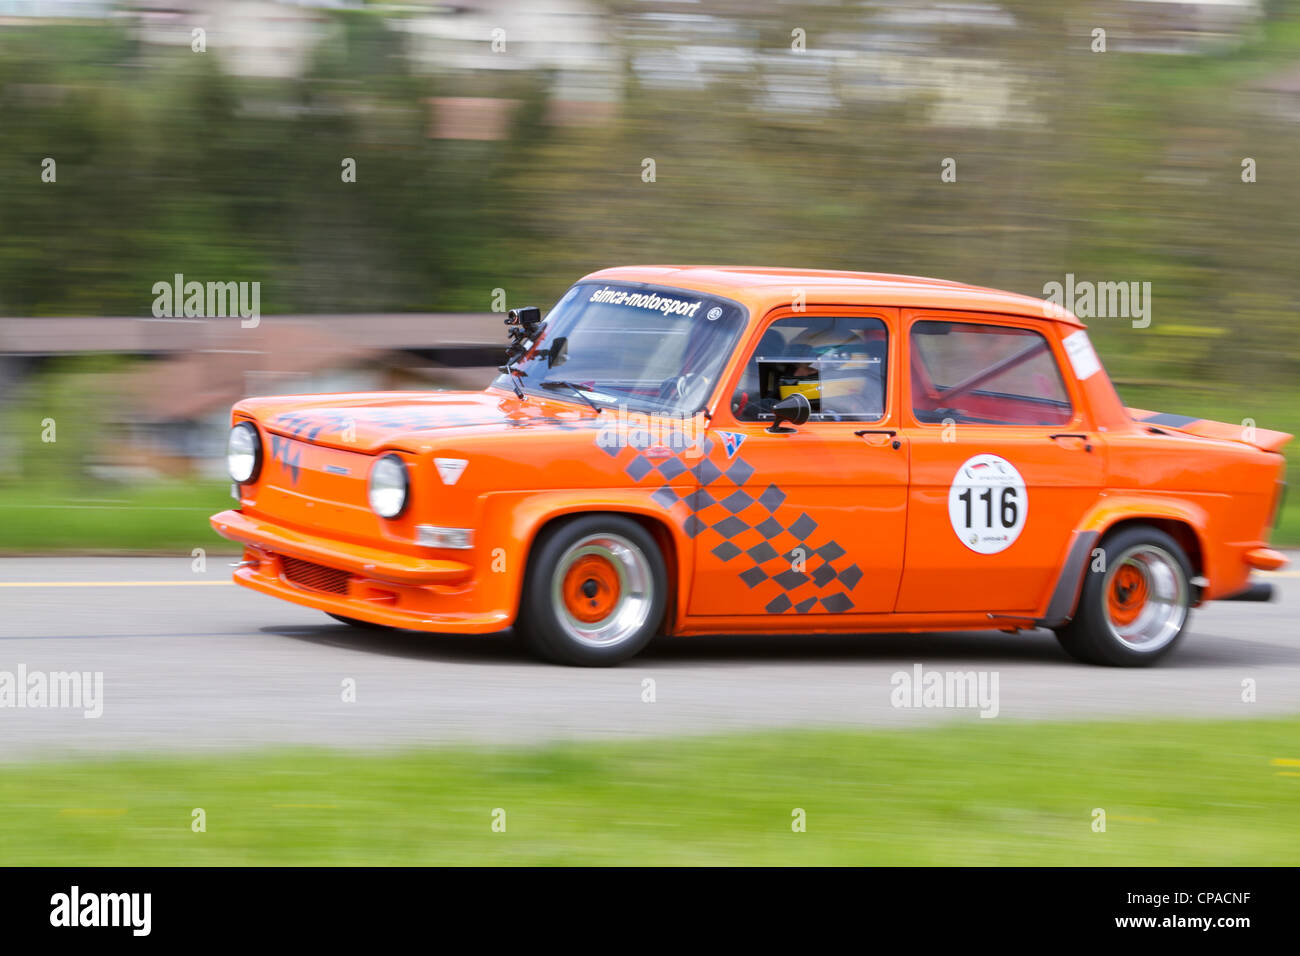 : Vintage race touring car Simca Rallye 2 from 1975 at Grand Prix in Mutschellen, SUI on April 29, 2012 - Stock Image